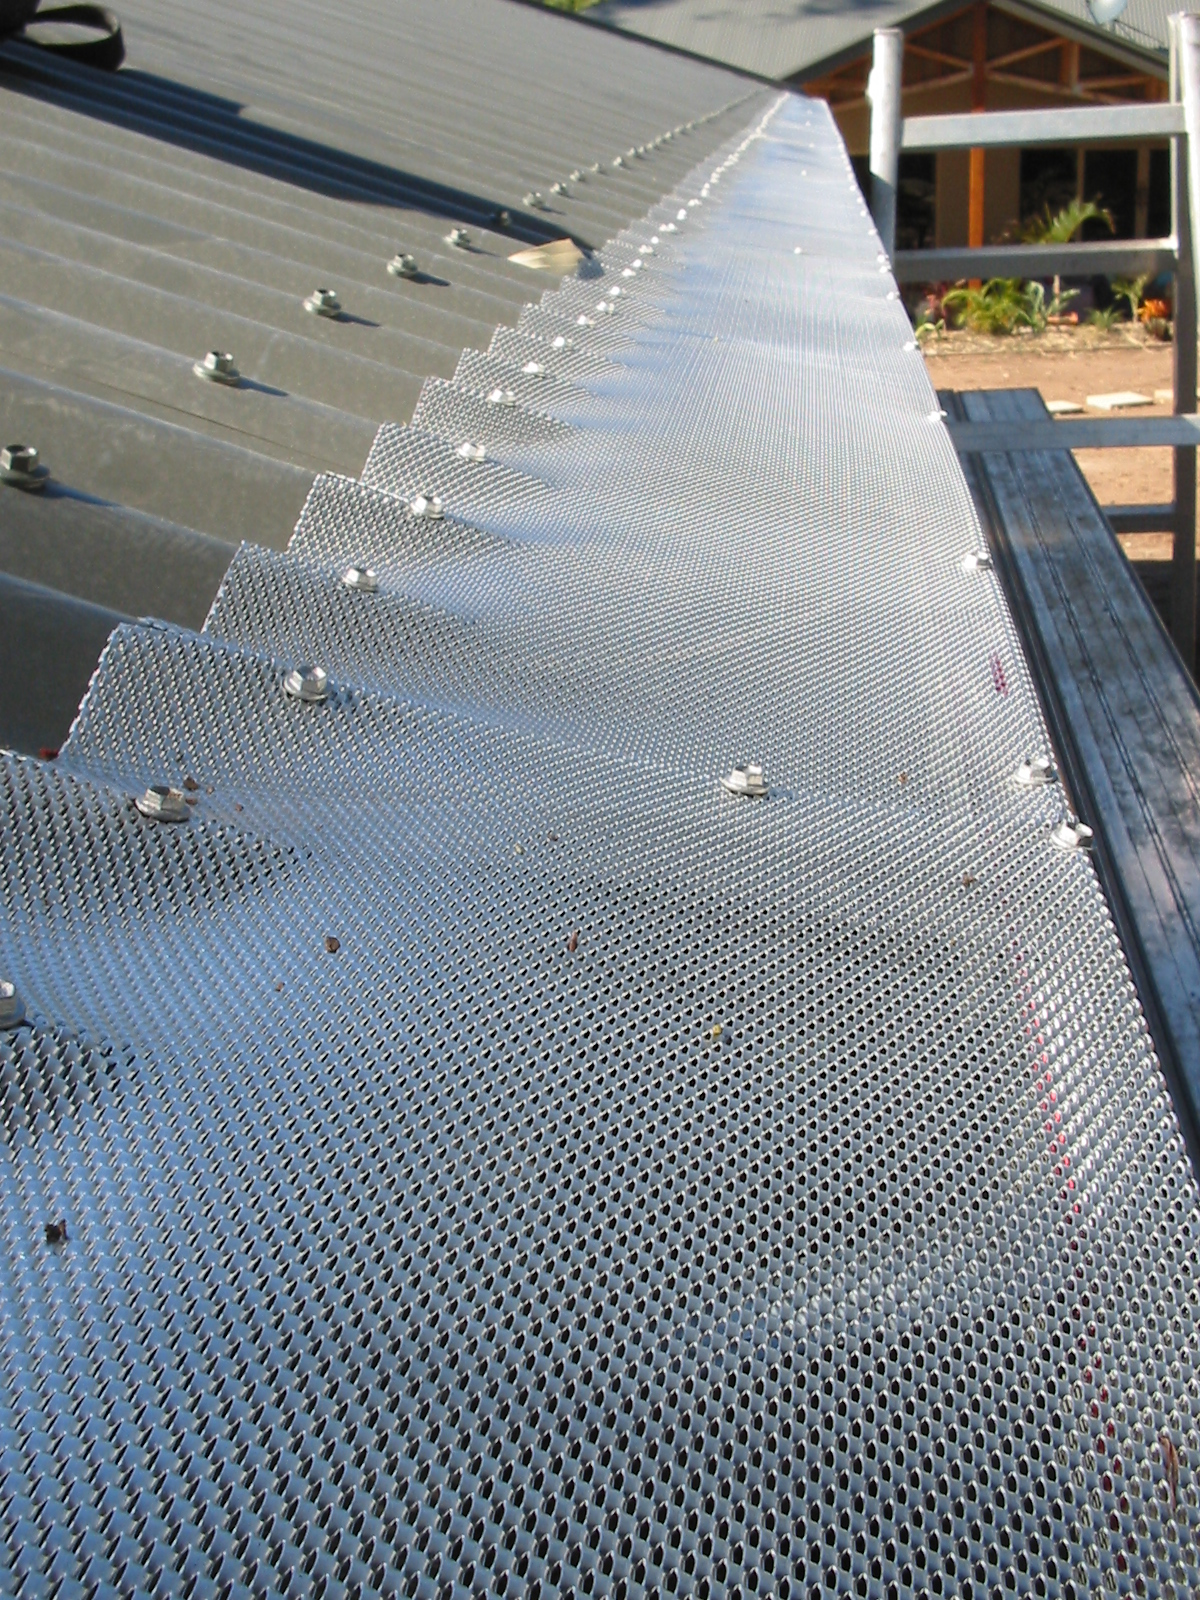 gutter guard corrugated iron